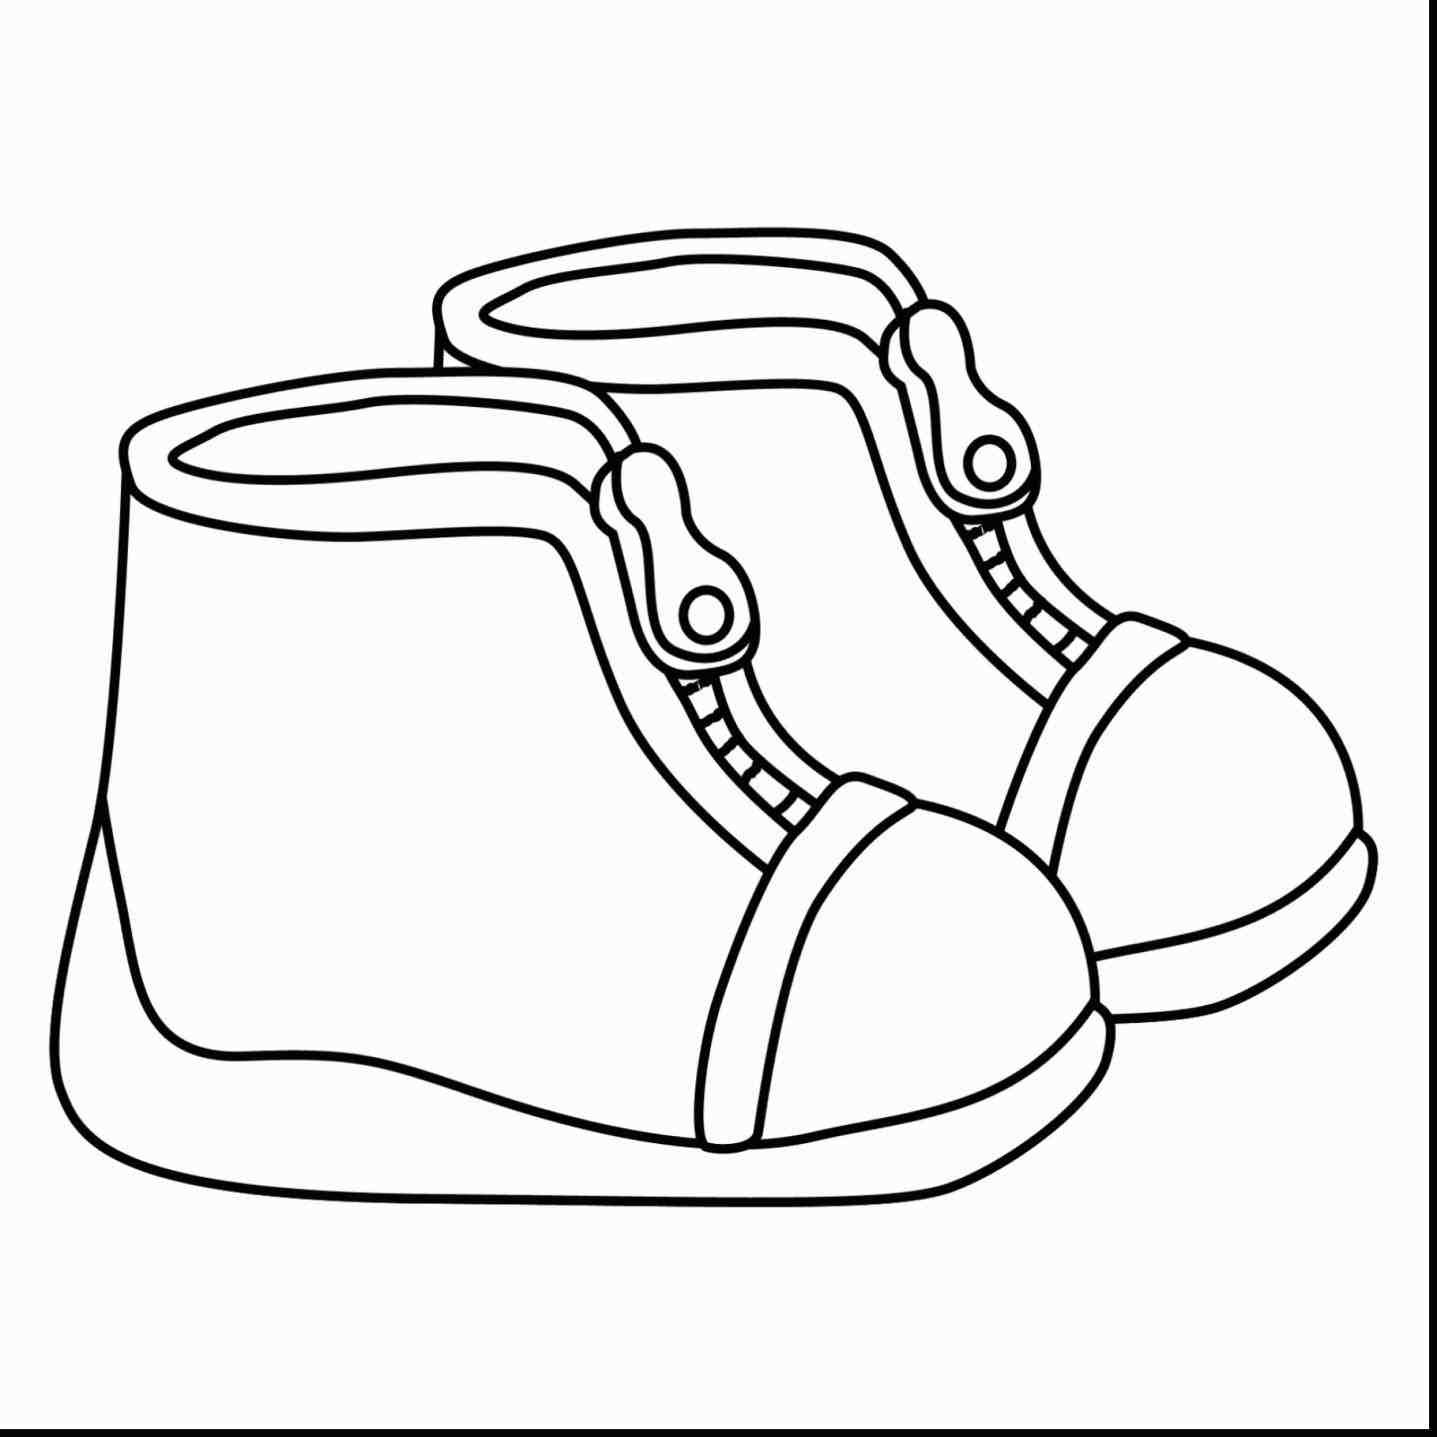 1437x1437 Baby Shoes Clipart